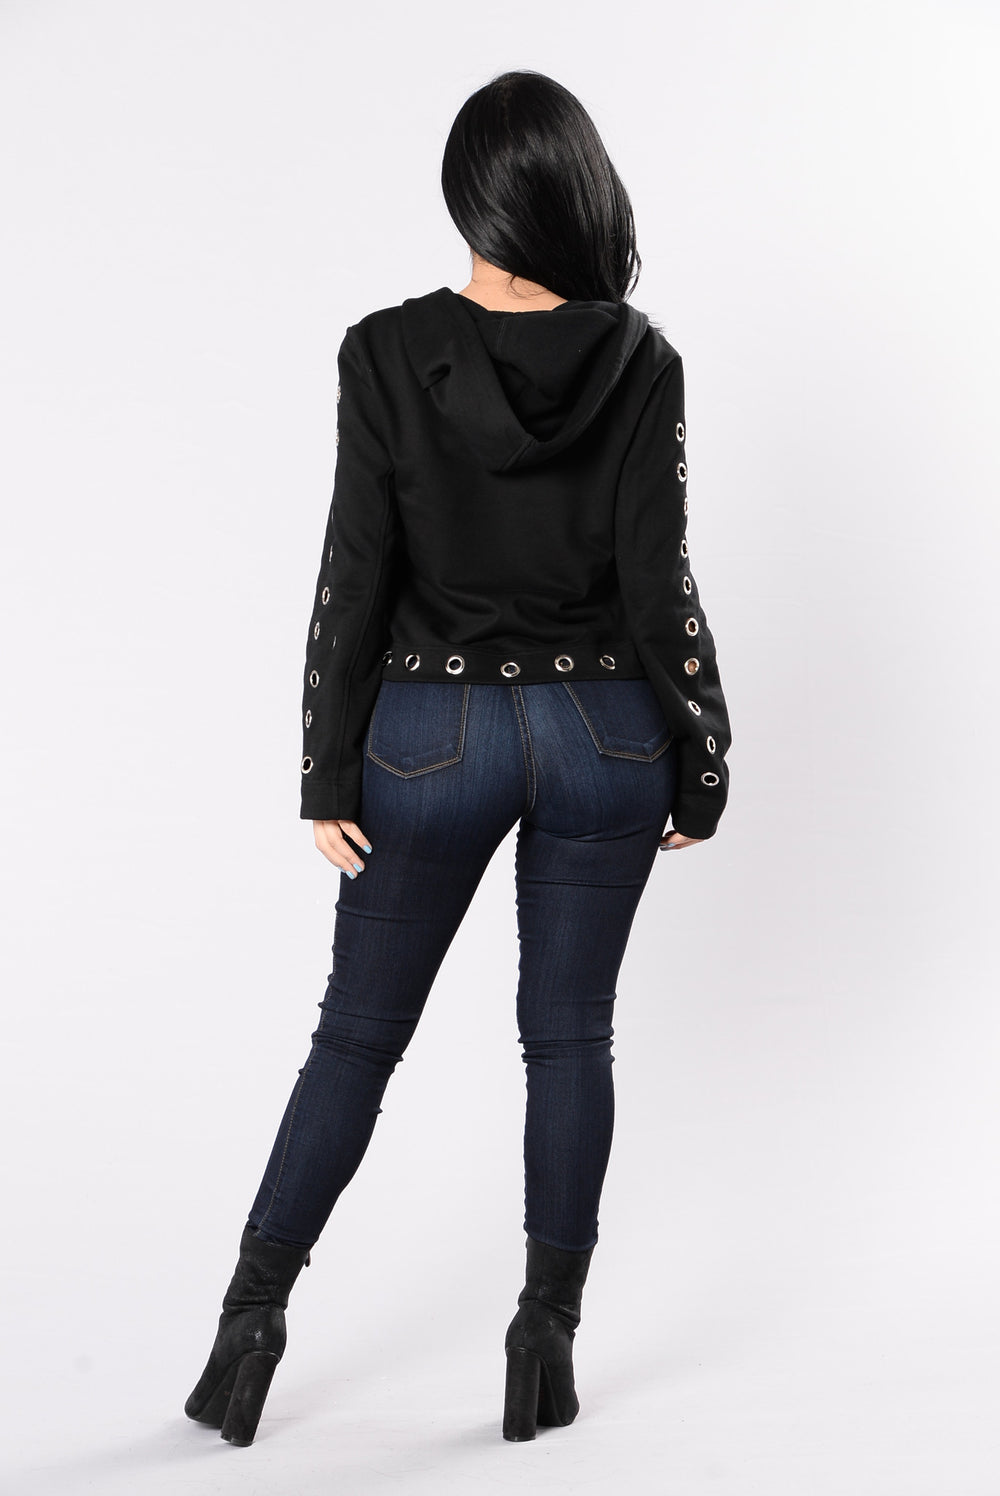 Traditional Lover Top - Black